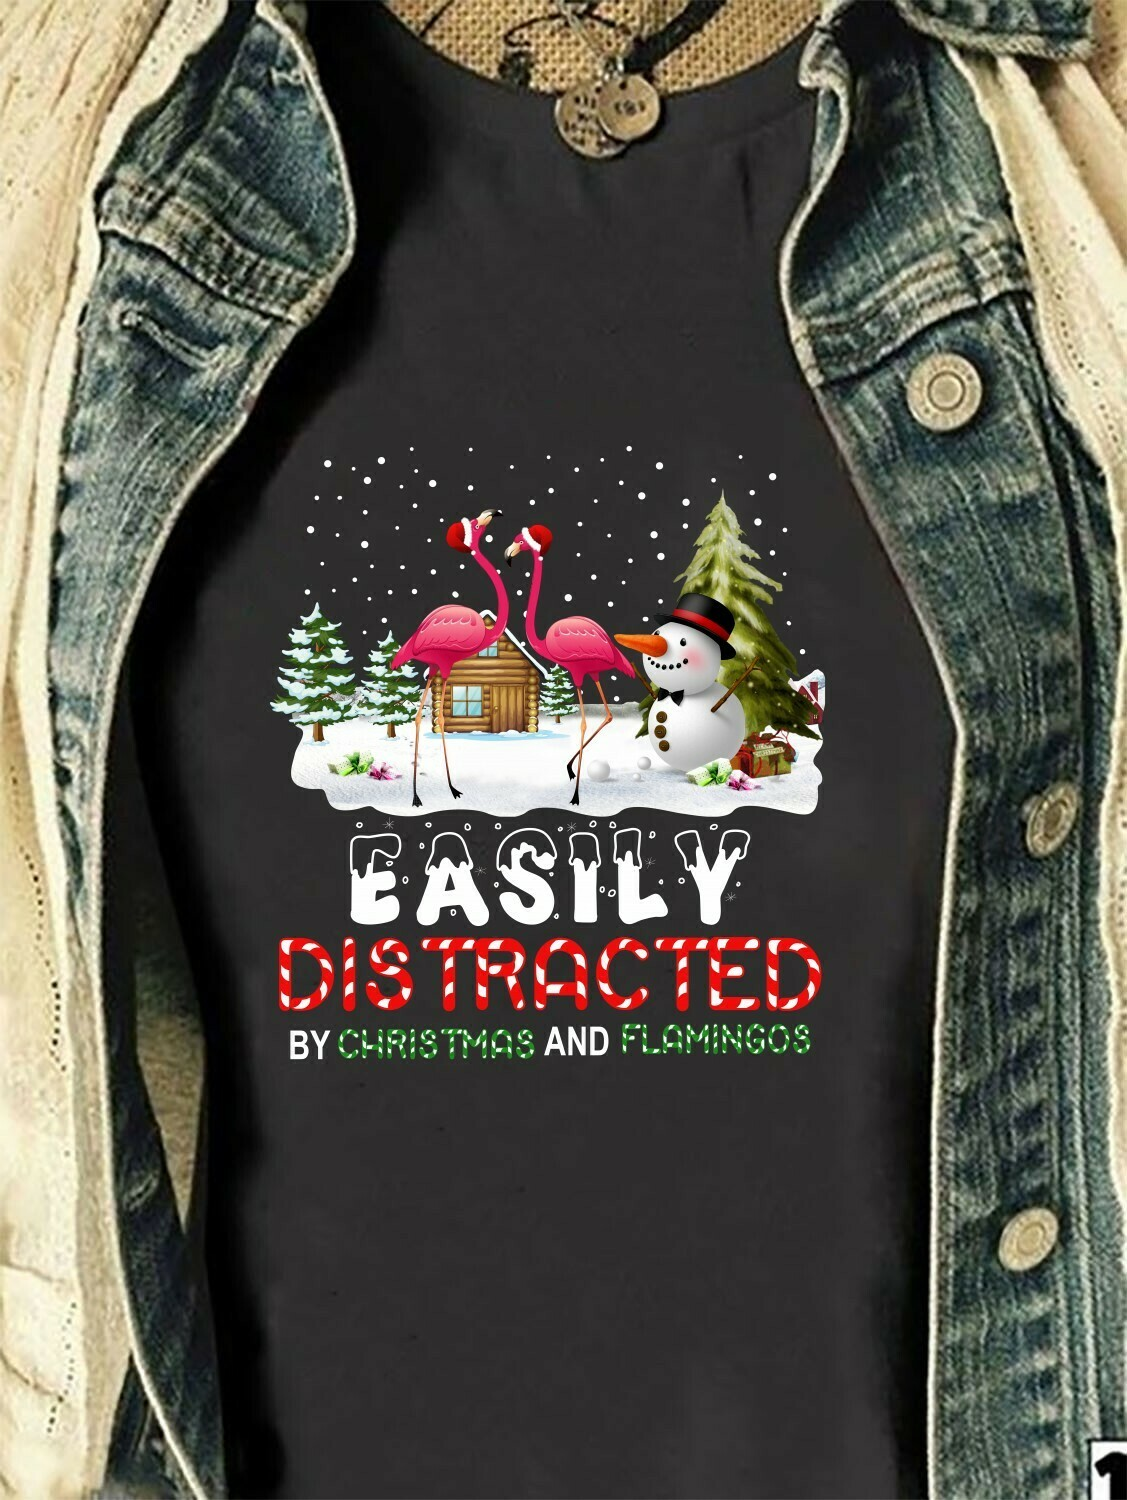 Easily Distracted By Christmas And Flamingos Gift For Lovers Christmas Noel Family Vacation Friends Team Party T-Shirt Long Sleeve Sweatshirt Hoodie Jolly Family Gifts